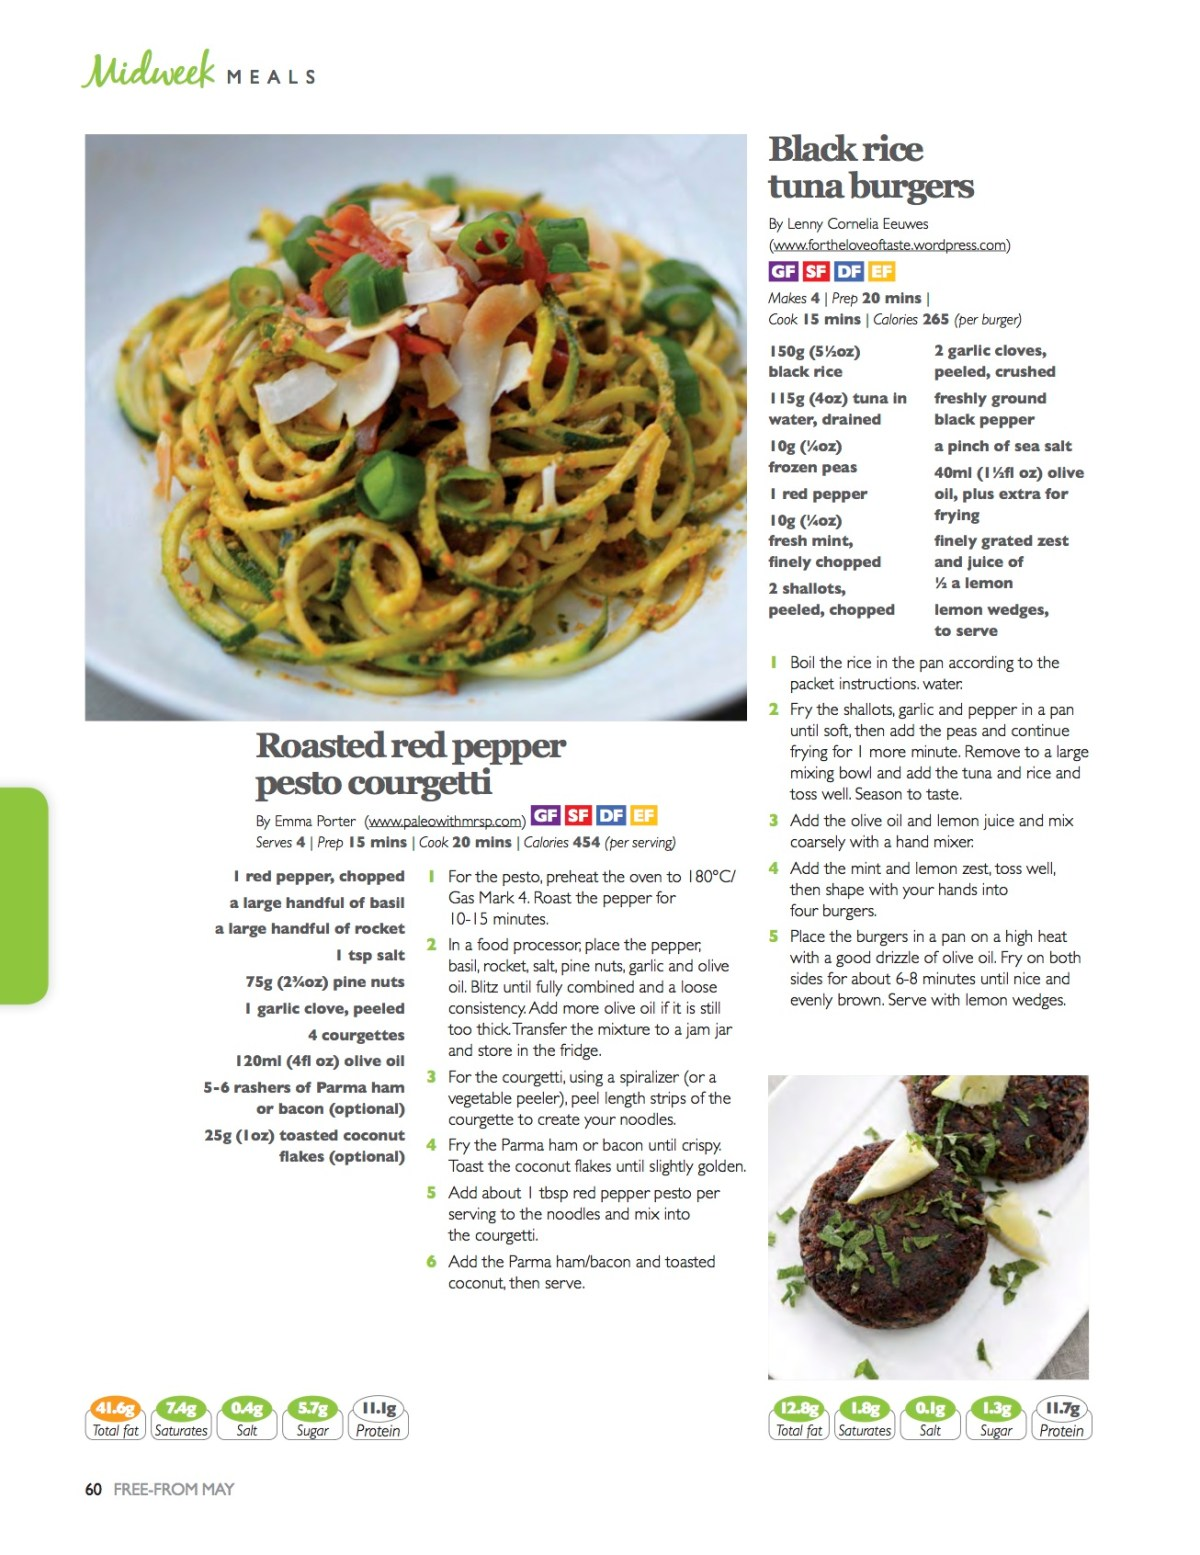 8 of my recipes were featured in Free From Magazine in May 2015, it was amazing seeing so many of my recipes in print!